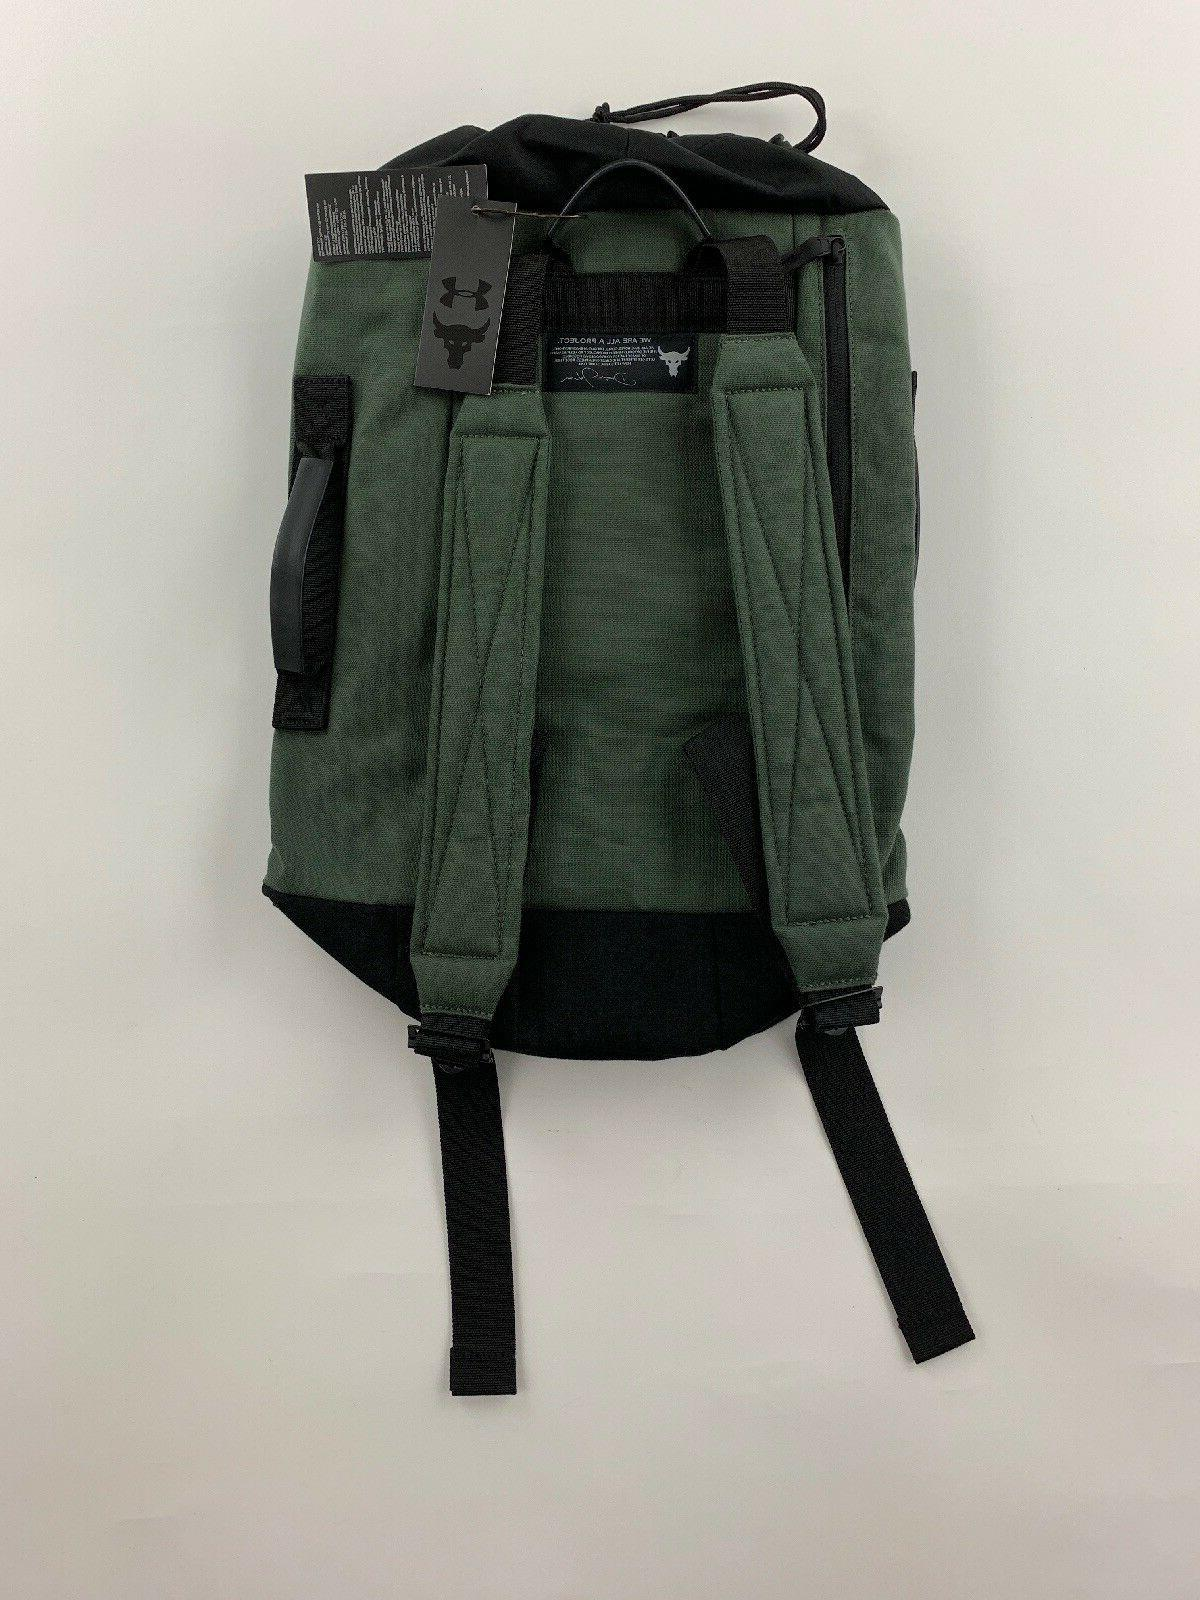 UA Under Armour Project 60 Green Duffle Bag Backpack NWT